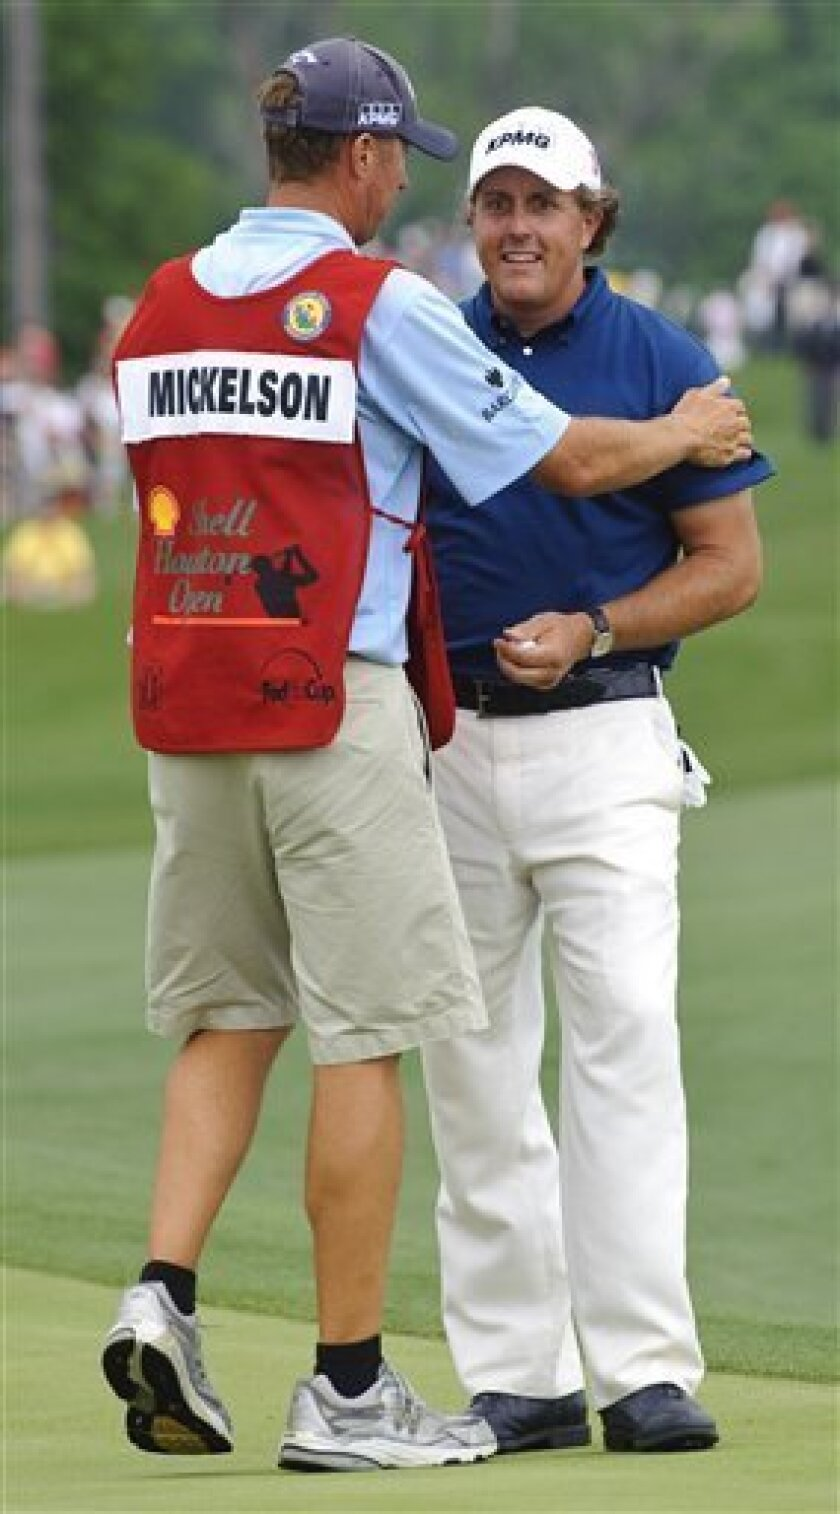 """Phil Mickelson, right, is congratulated by caddie Jim """"Bones"""" Mackay after winning the Houston Open PGA Tour golf tournament on Sunday, April 3, 2011, in Humble, Texas. Mickelson won the tournament with a 20-under par 268. (AP Photo/Dave Einsel)"""